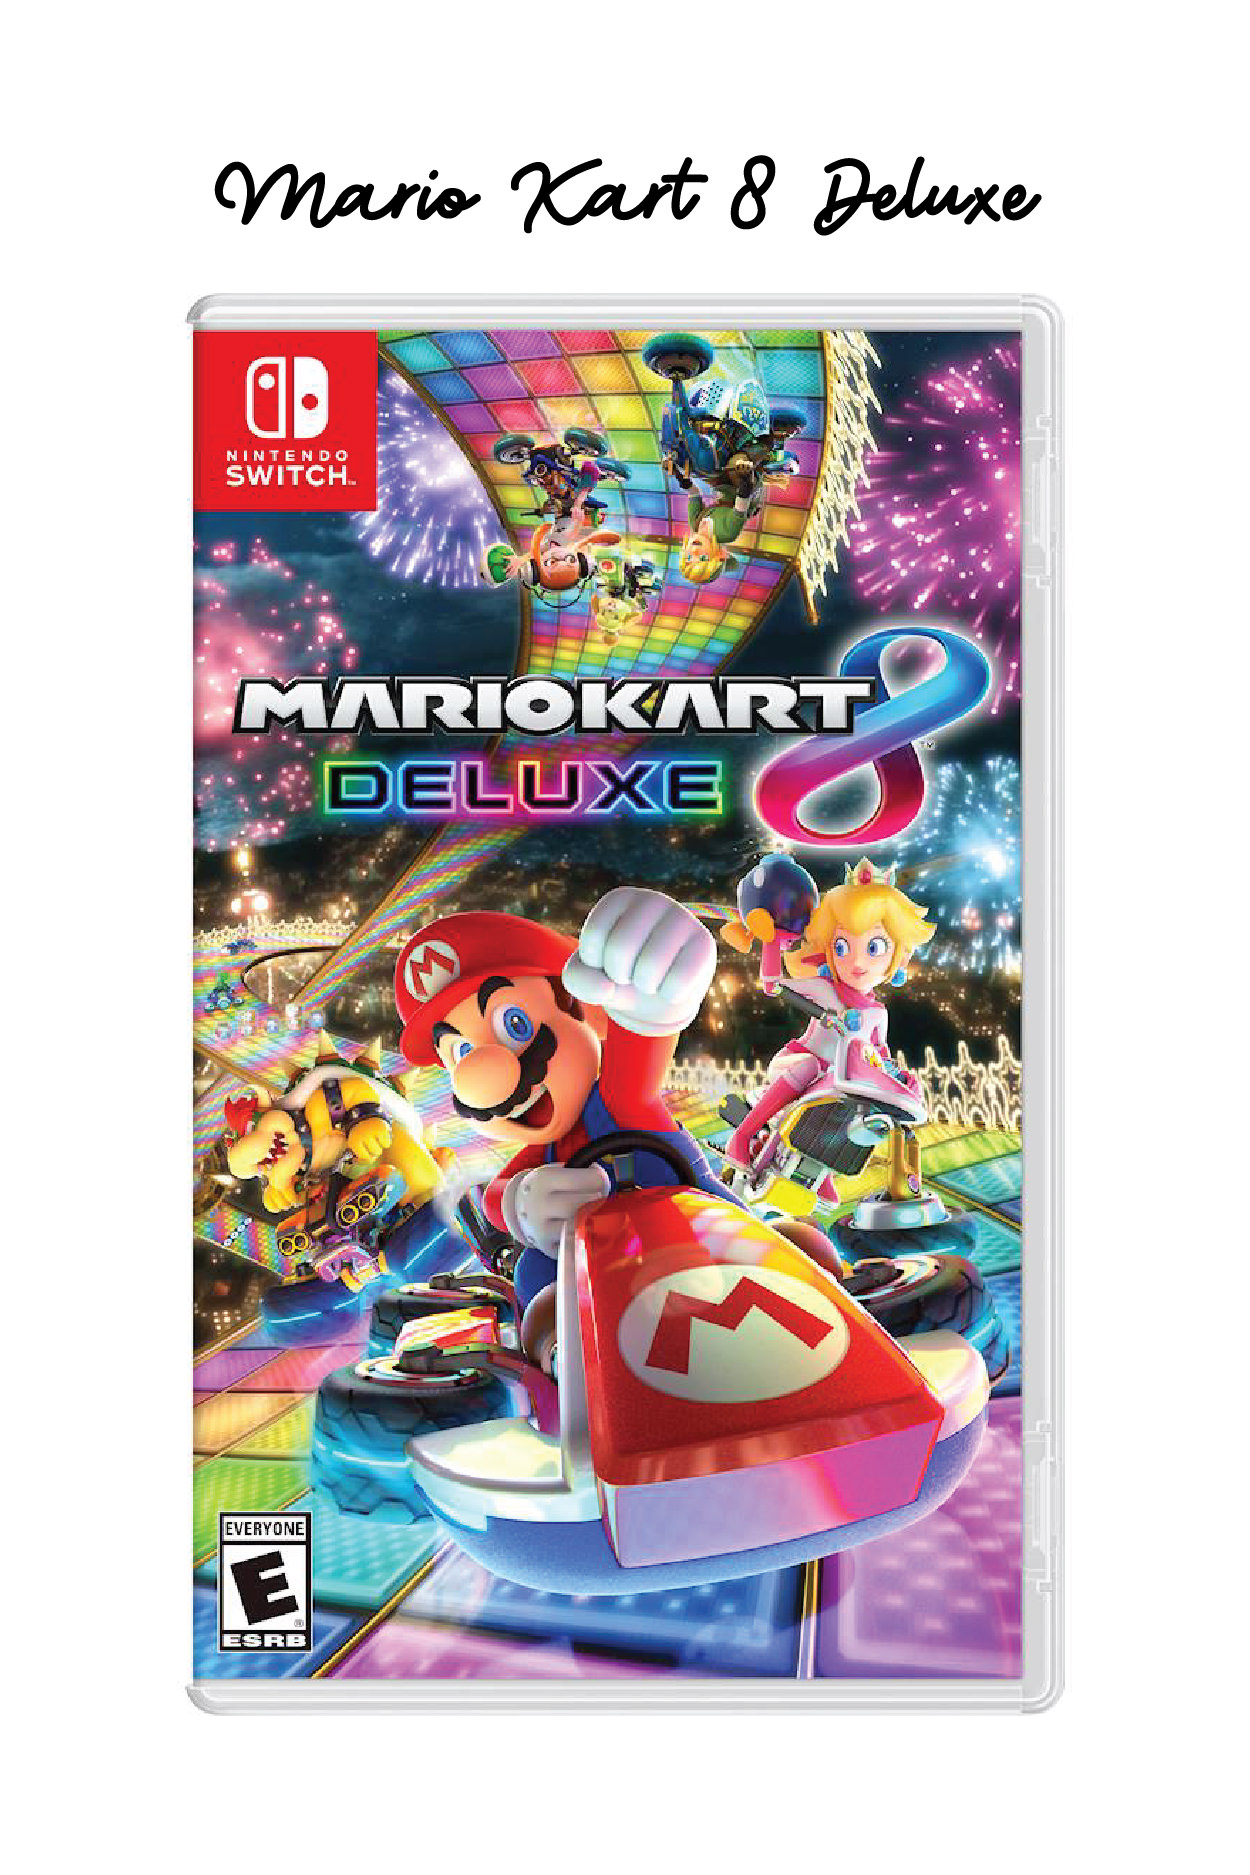 Mario Kart 8 Deluxe, The Best Nintendo Switch Games // Miss Molly Moon